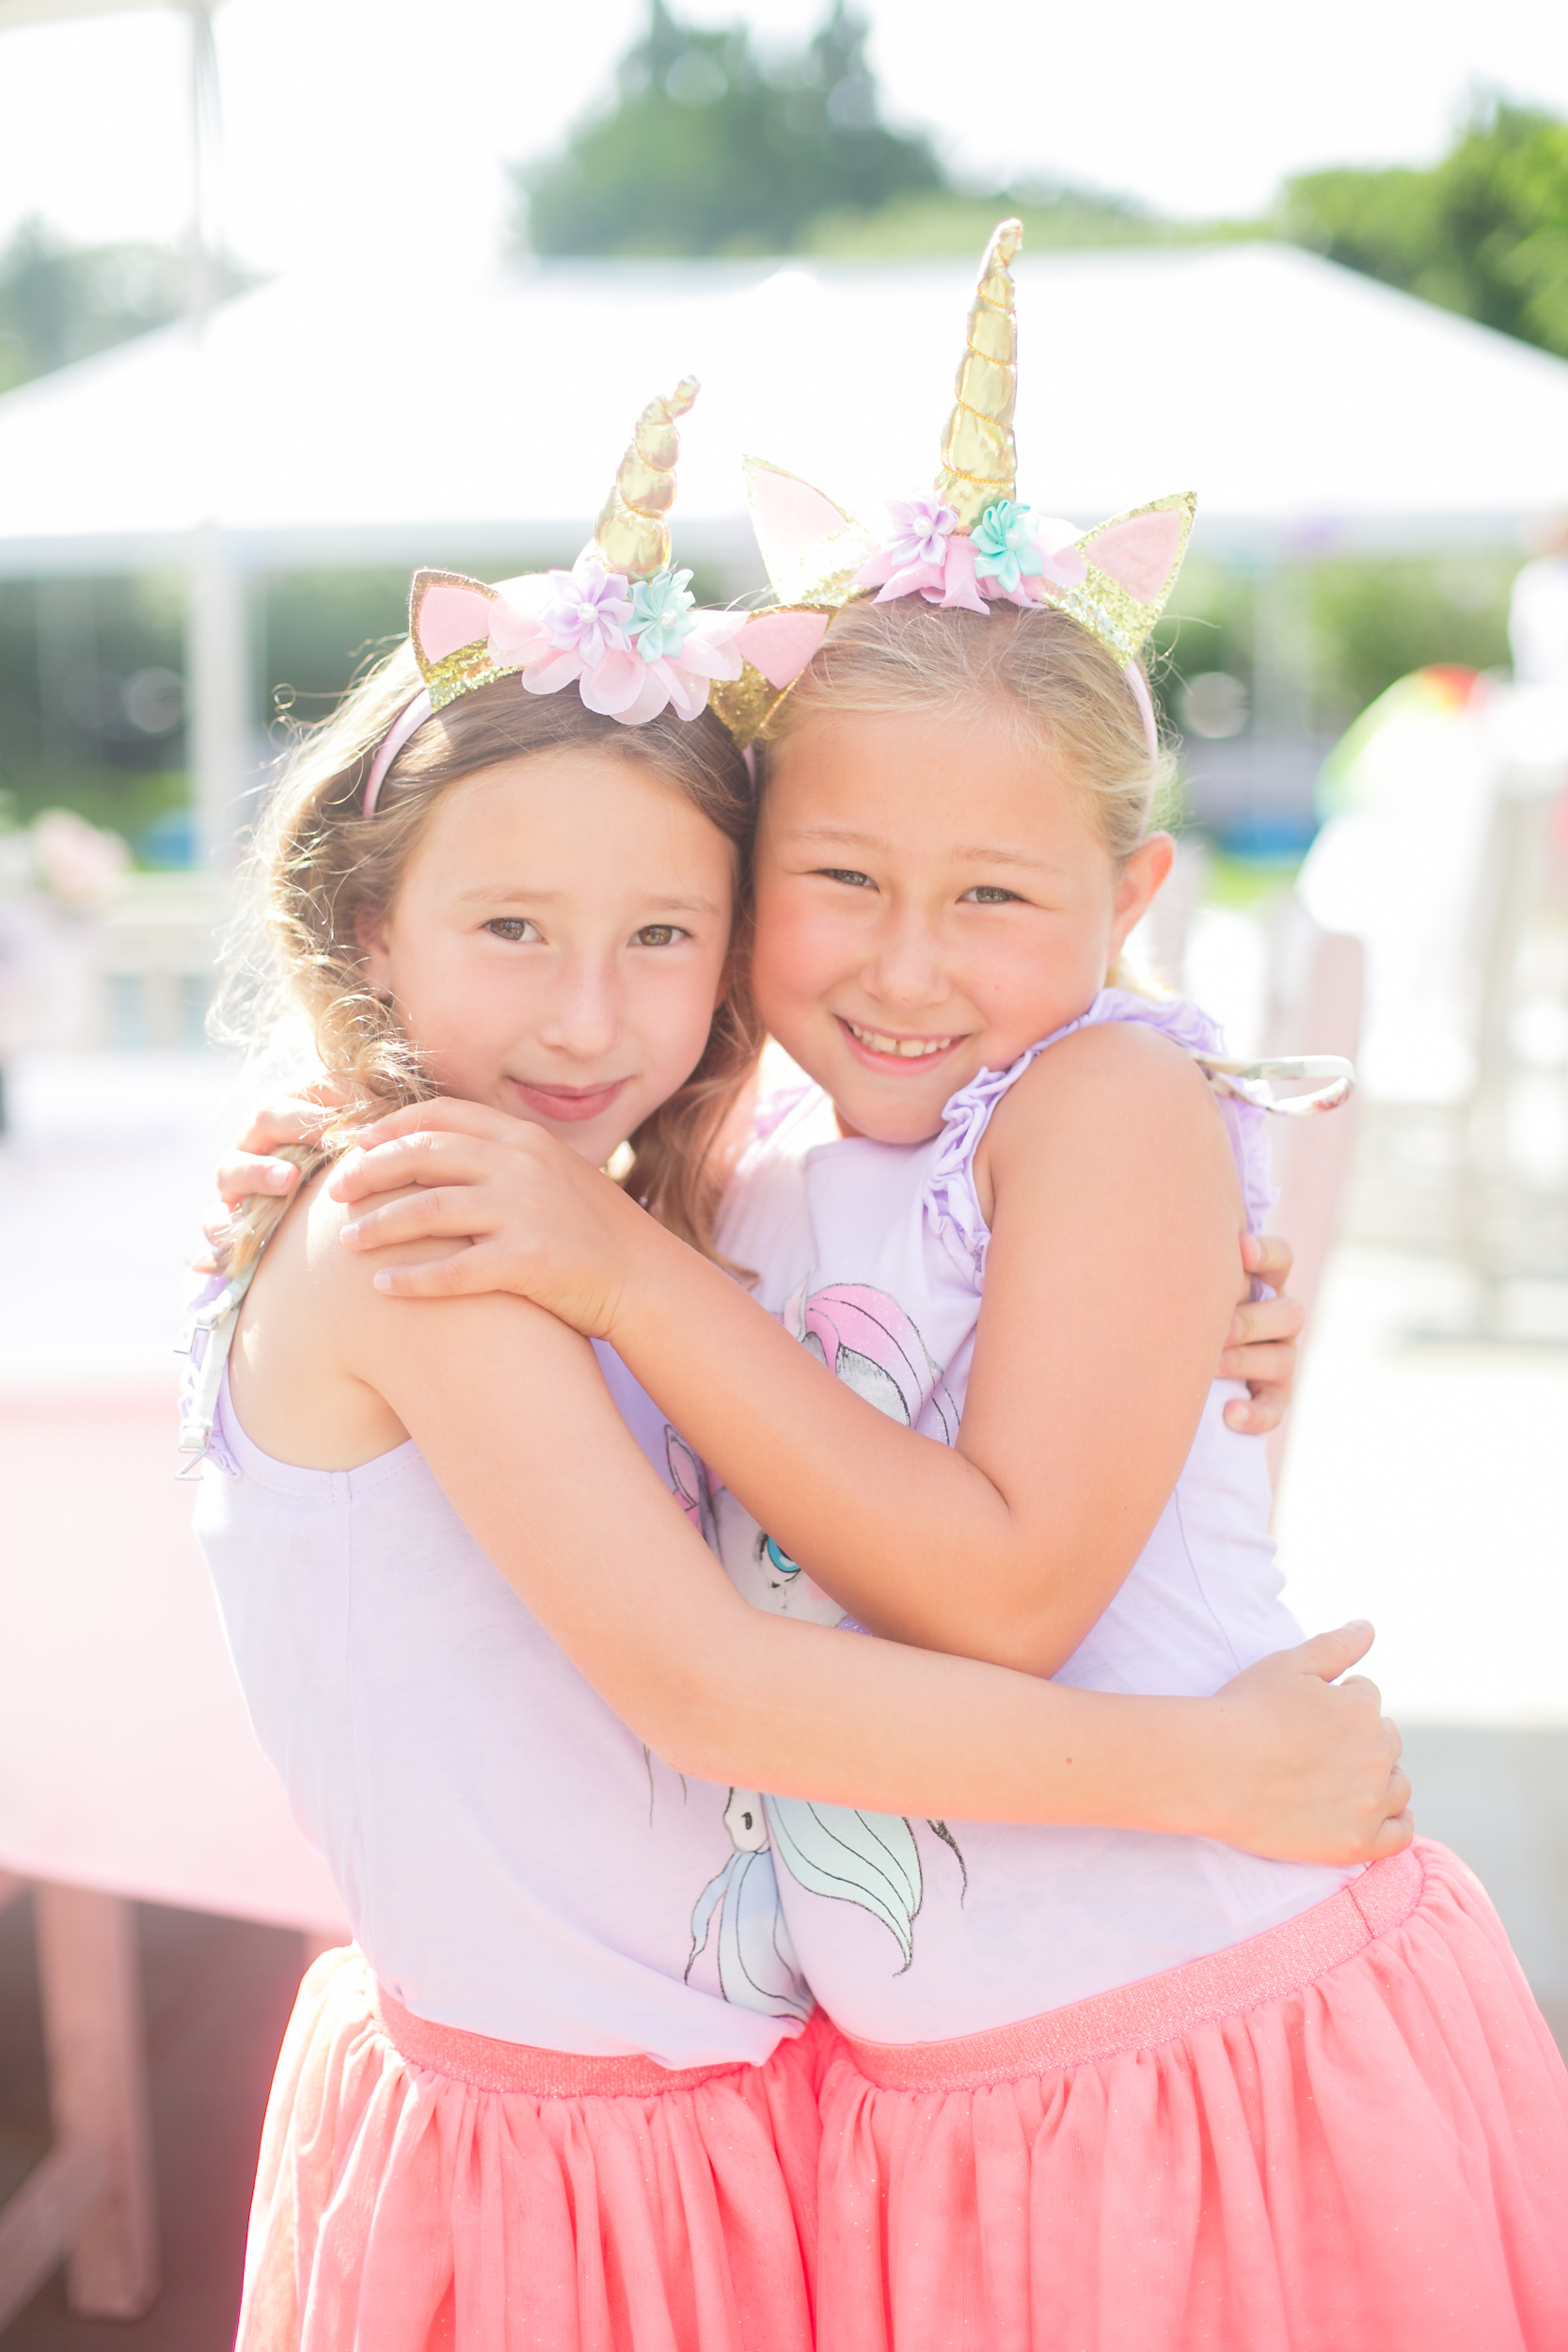 We Love Unicorns Birthday Pool Party - Phillip Van Nostrand Photography